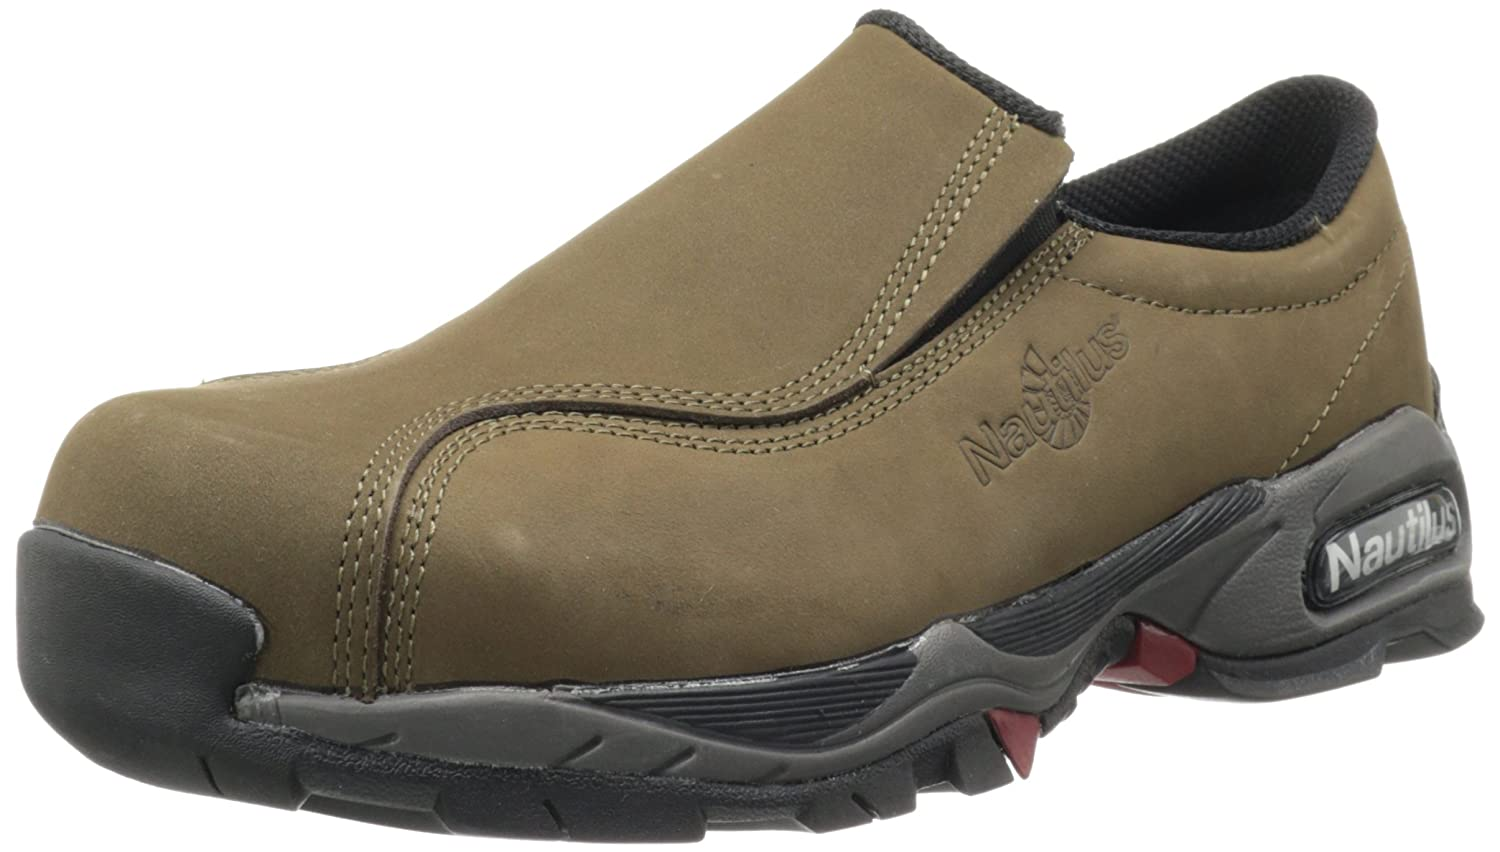 Nautilus Safety Footwear メンズ B000IX1NIC 15 D(M) US|グリーン グリーン 15 D(M) US